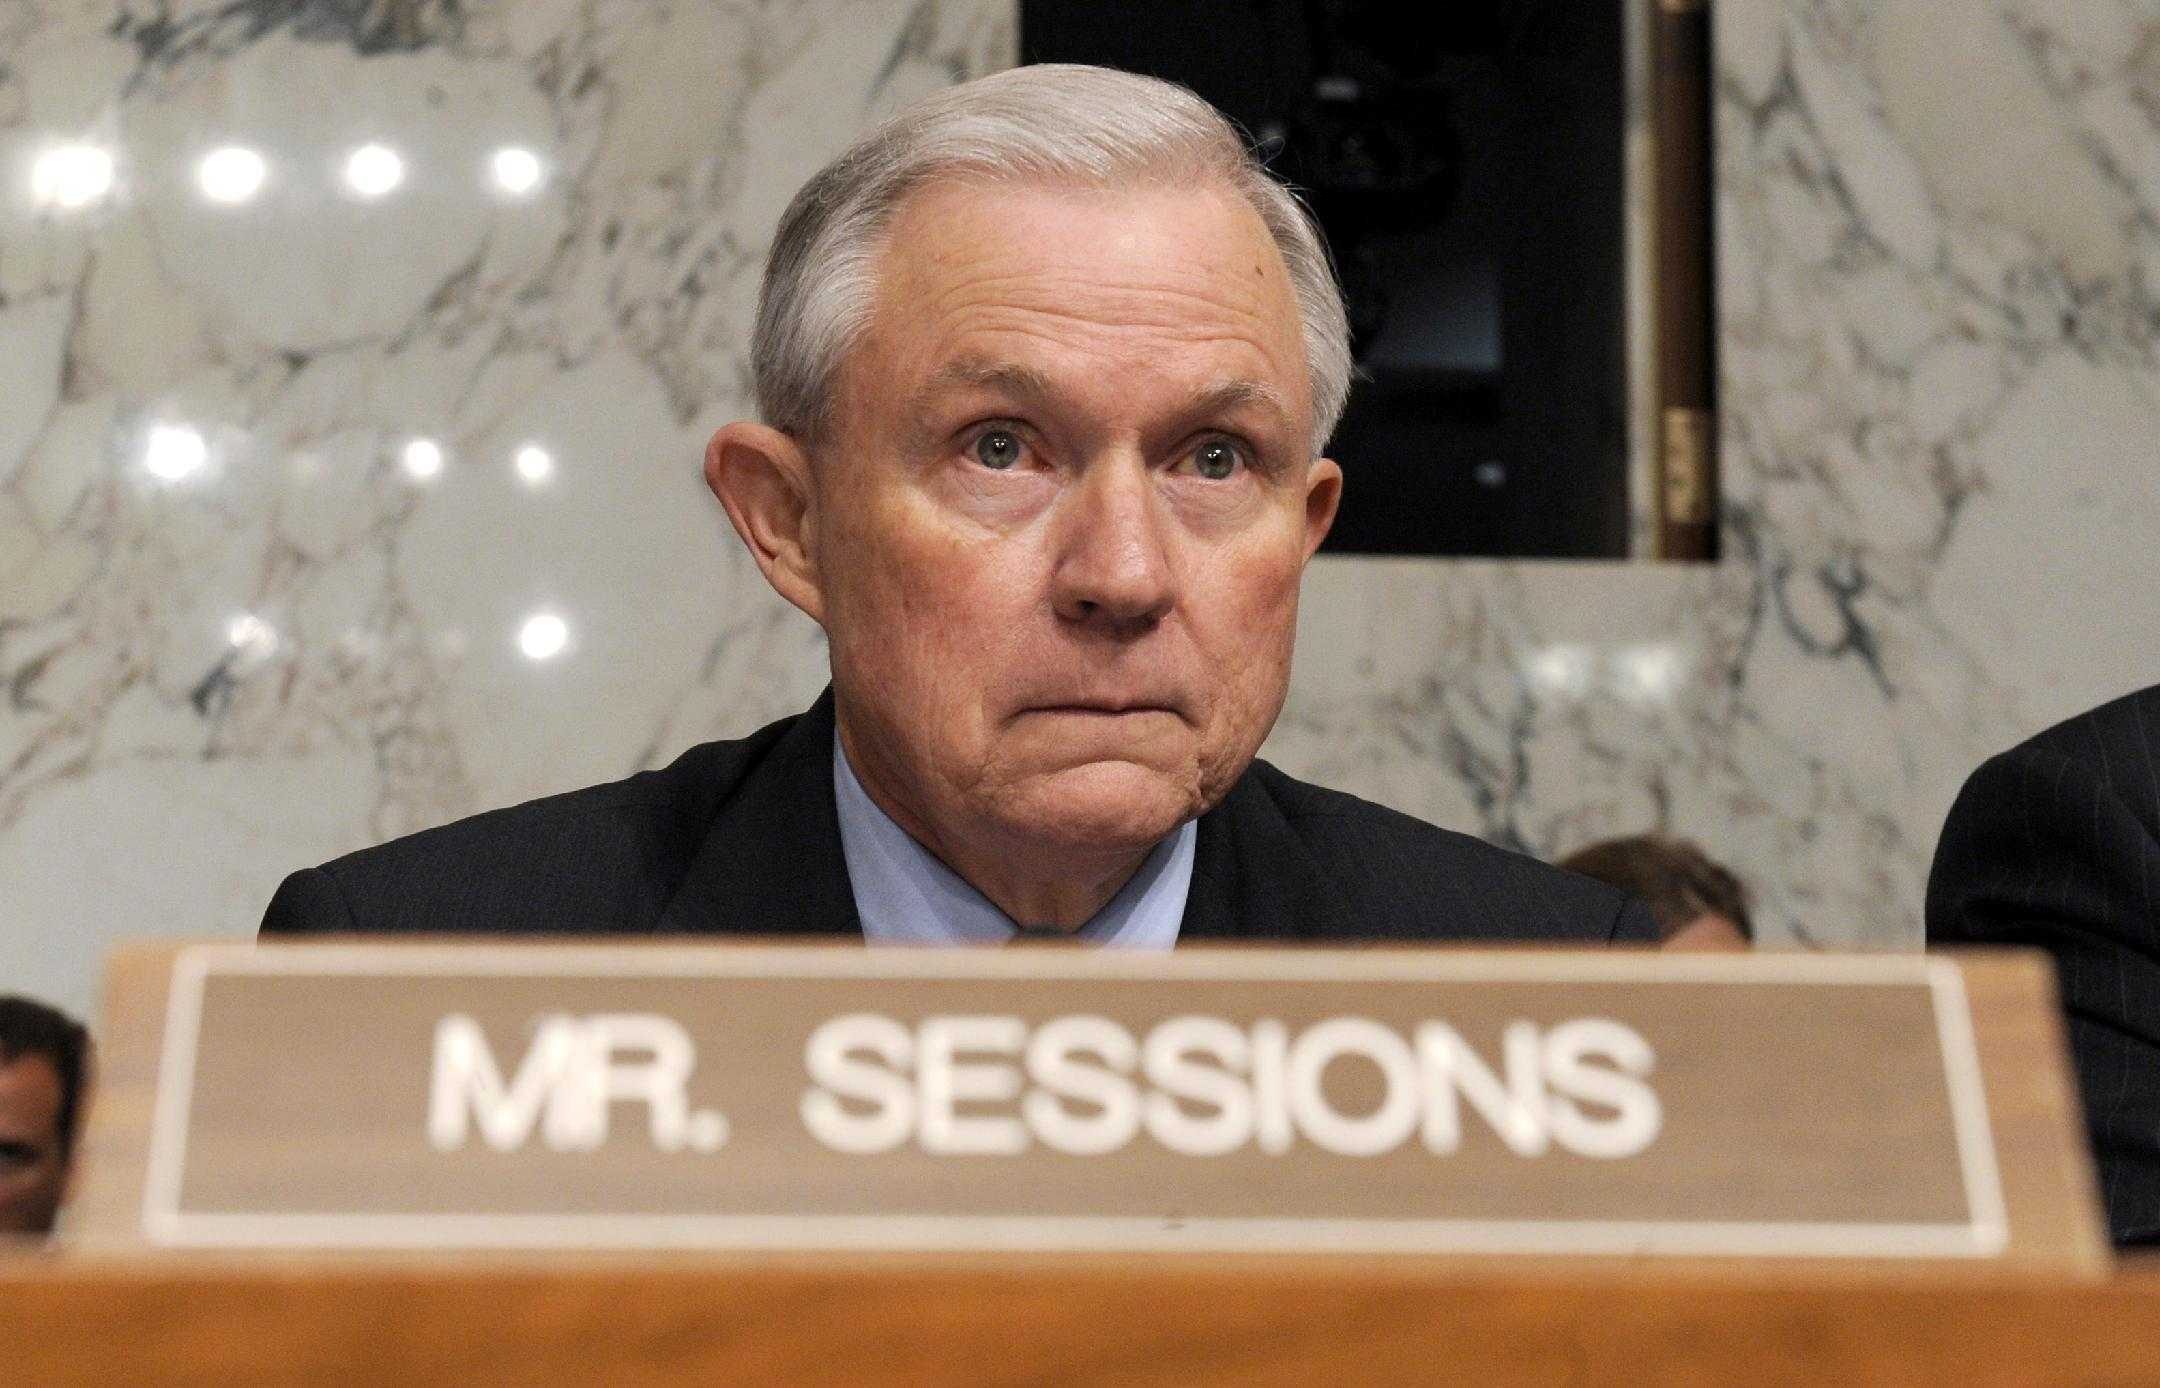 """FILE - In this June 30, 2010 file photo, Senate Judiciary Committee member, Sen. Jeff Sessions, R-Ala., is seen on Capitol Hill in Washington. Sessions told reporters Thursday, the president should take responsibility for the Secret Service, GSA and energy company Solyndra scandals and insist on a government culture in which taxpayer dollars are not wasted. He said, """"I don't sense that this president has shown that kind of managerial leadership."""" (AP Photo/Susan Walsh, File)"""